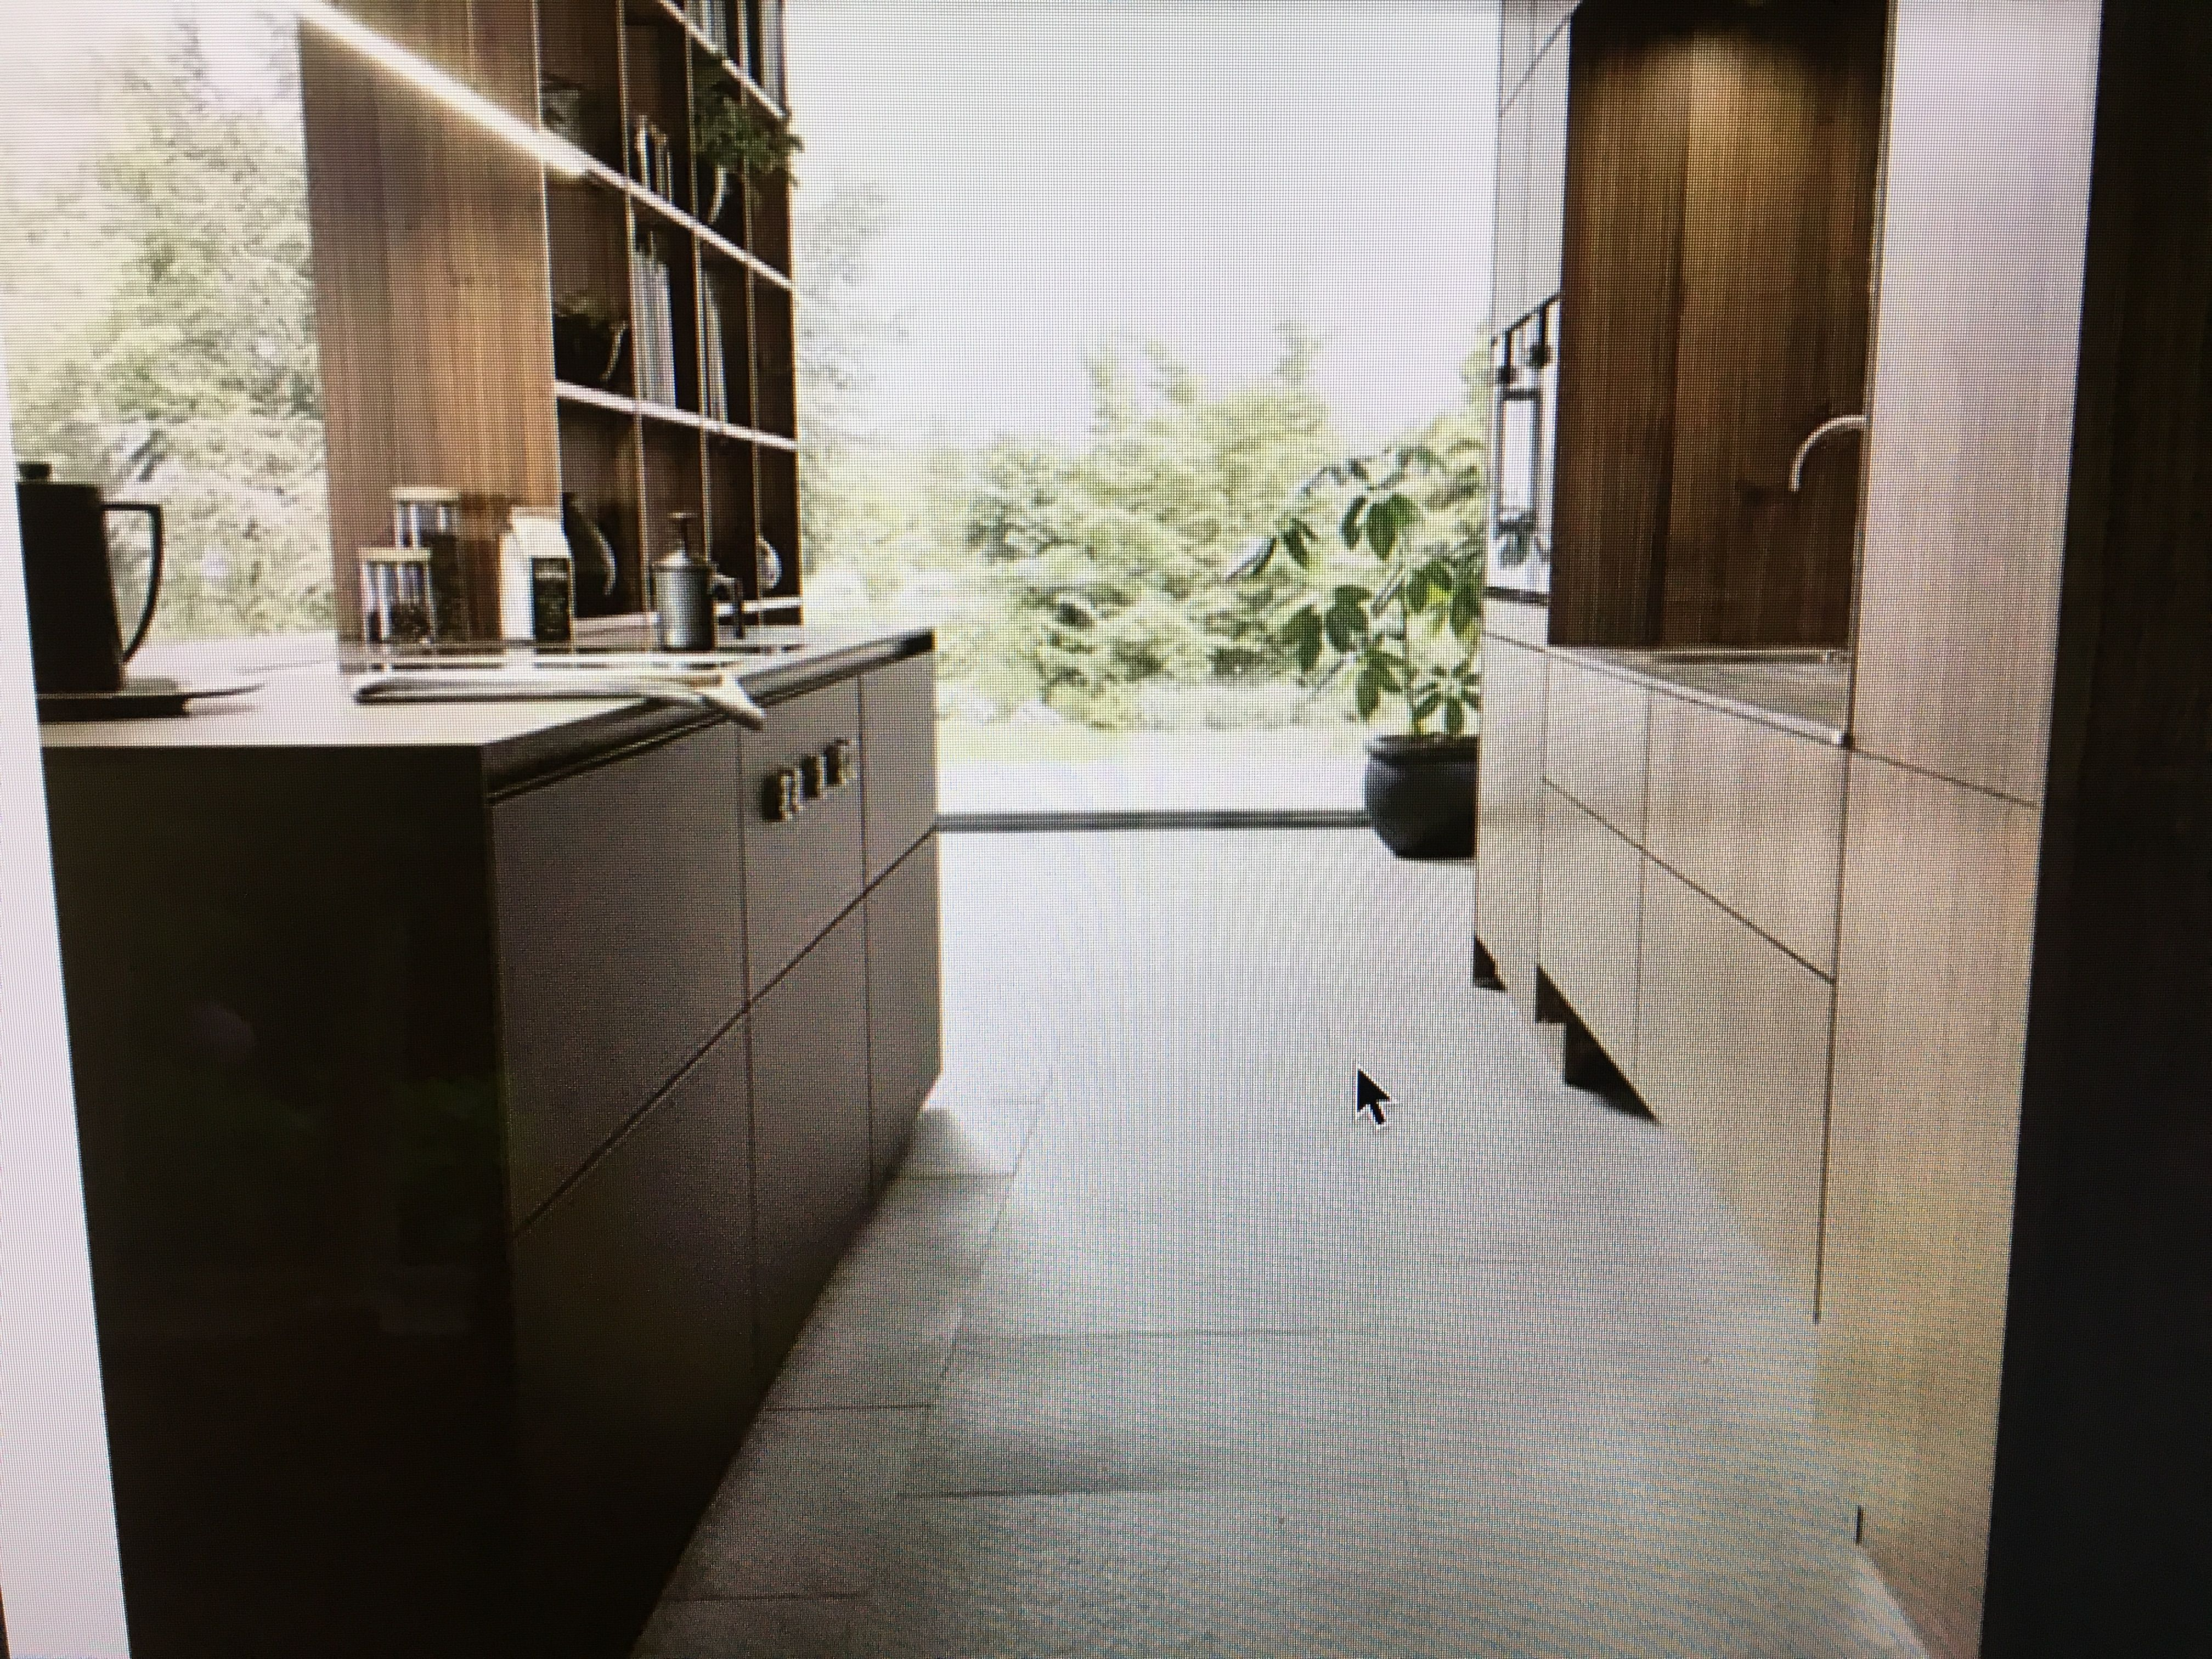 Schuller | Kitchen cabinets, Home, Home decor